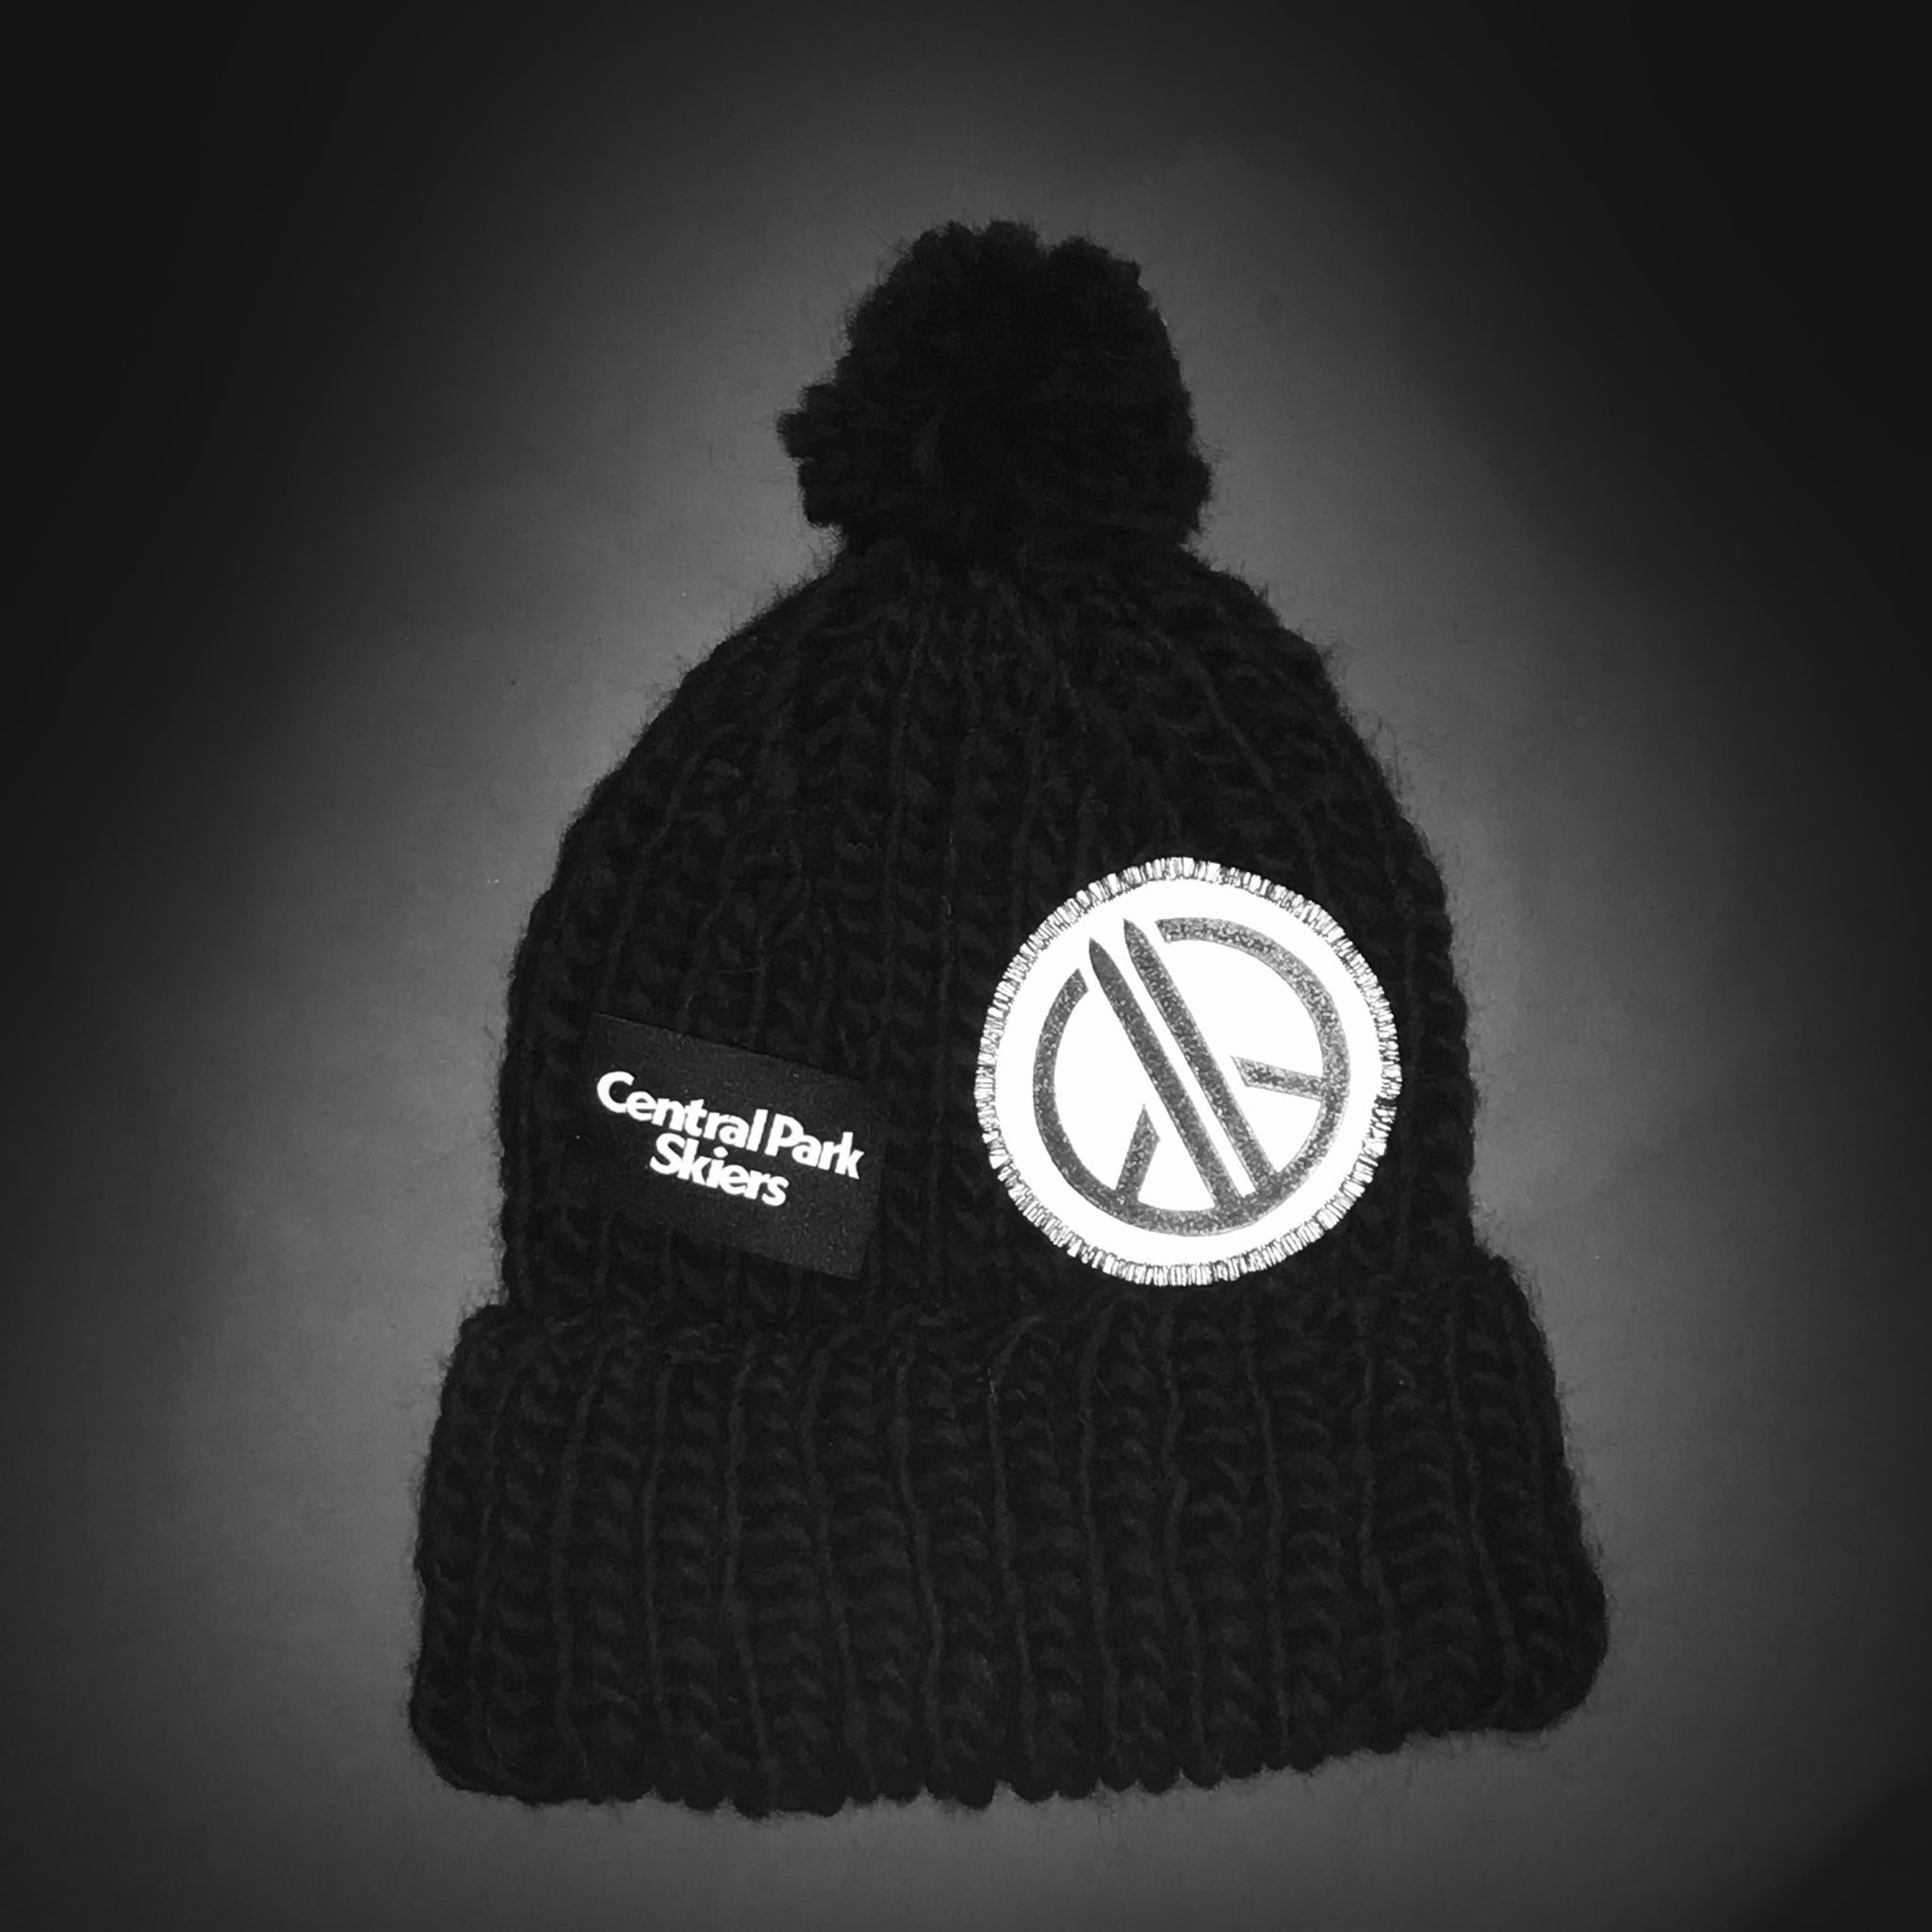 Imagine wool beanie, All Black Reflective